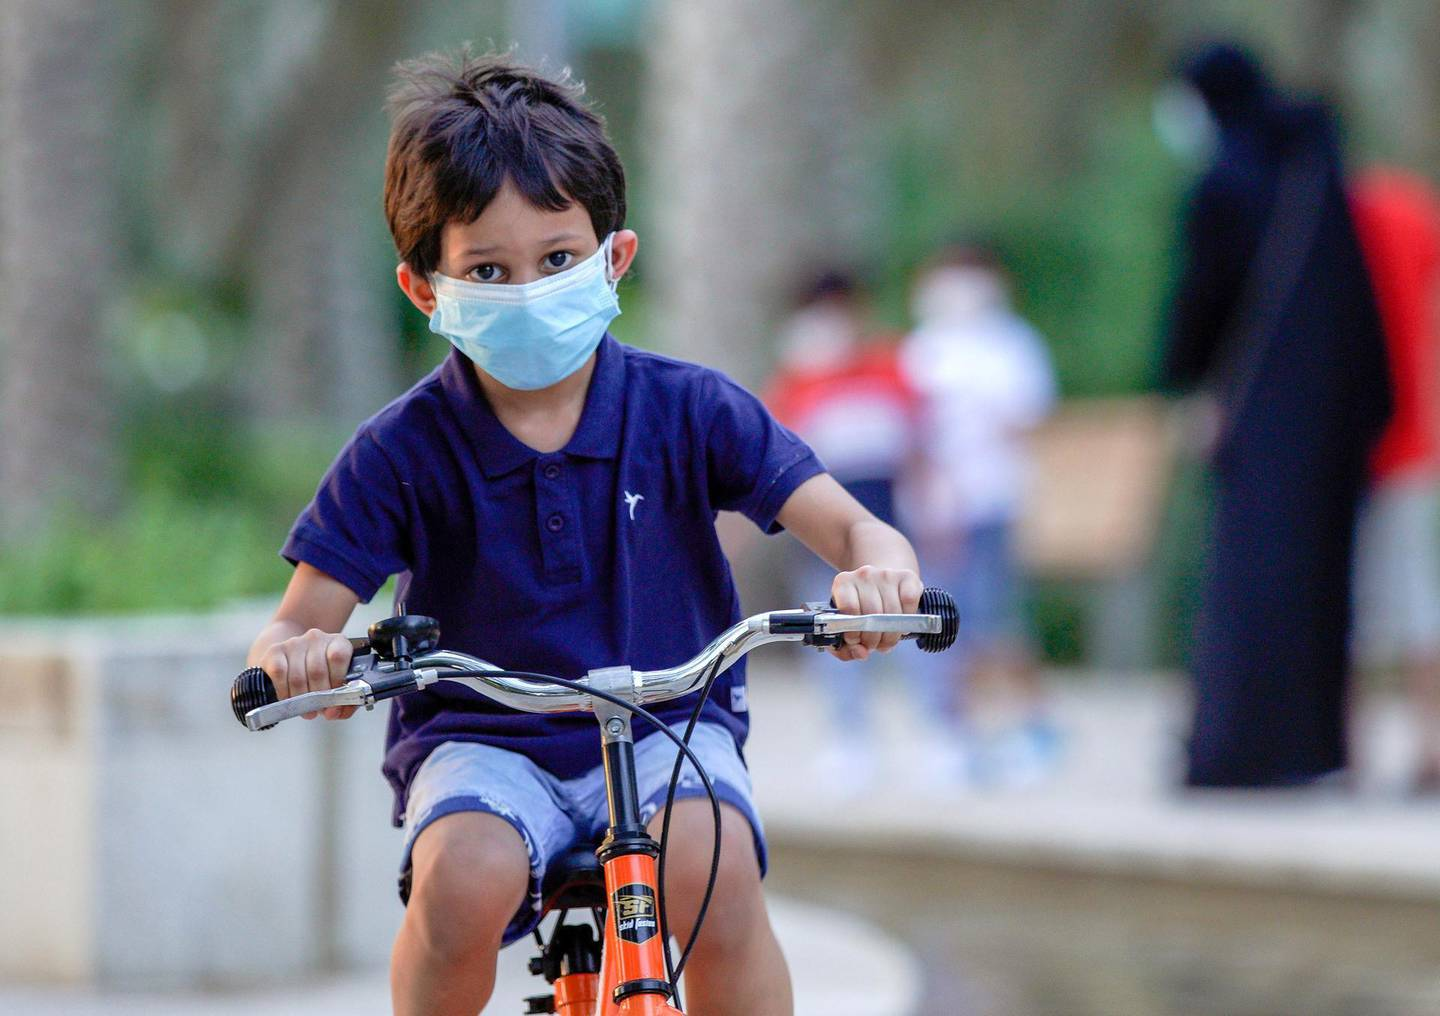 """Abu Dhabi, United Arab Emirates, October 26, 2020.  The """"new norm"""" of Covid-19 precautionary measures at Umm Al Emarat Park, Abu Dhabi, on a Monday afternoon.  It is a common sight to see children wearing face masks riding their bikes or scooters at the park.Victor Besa/The NationalSection:  NAReporter:"""